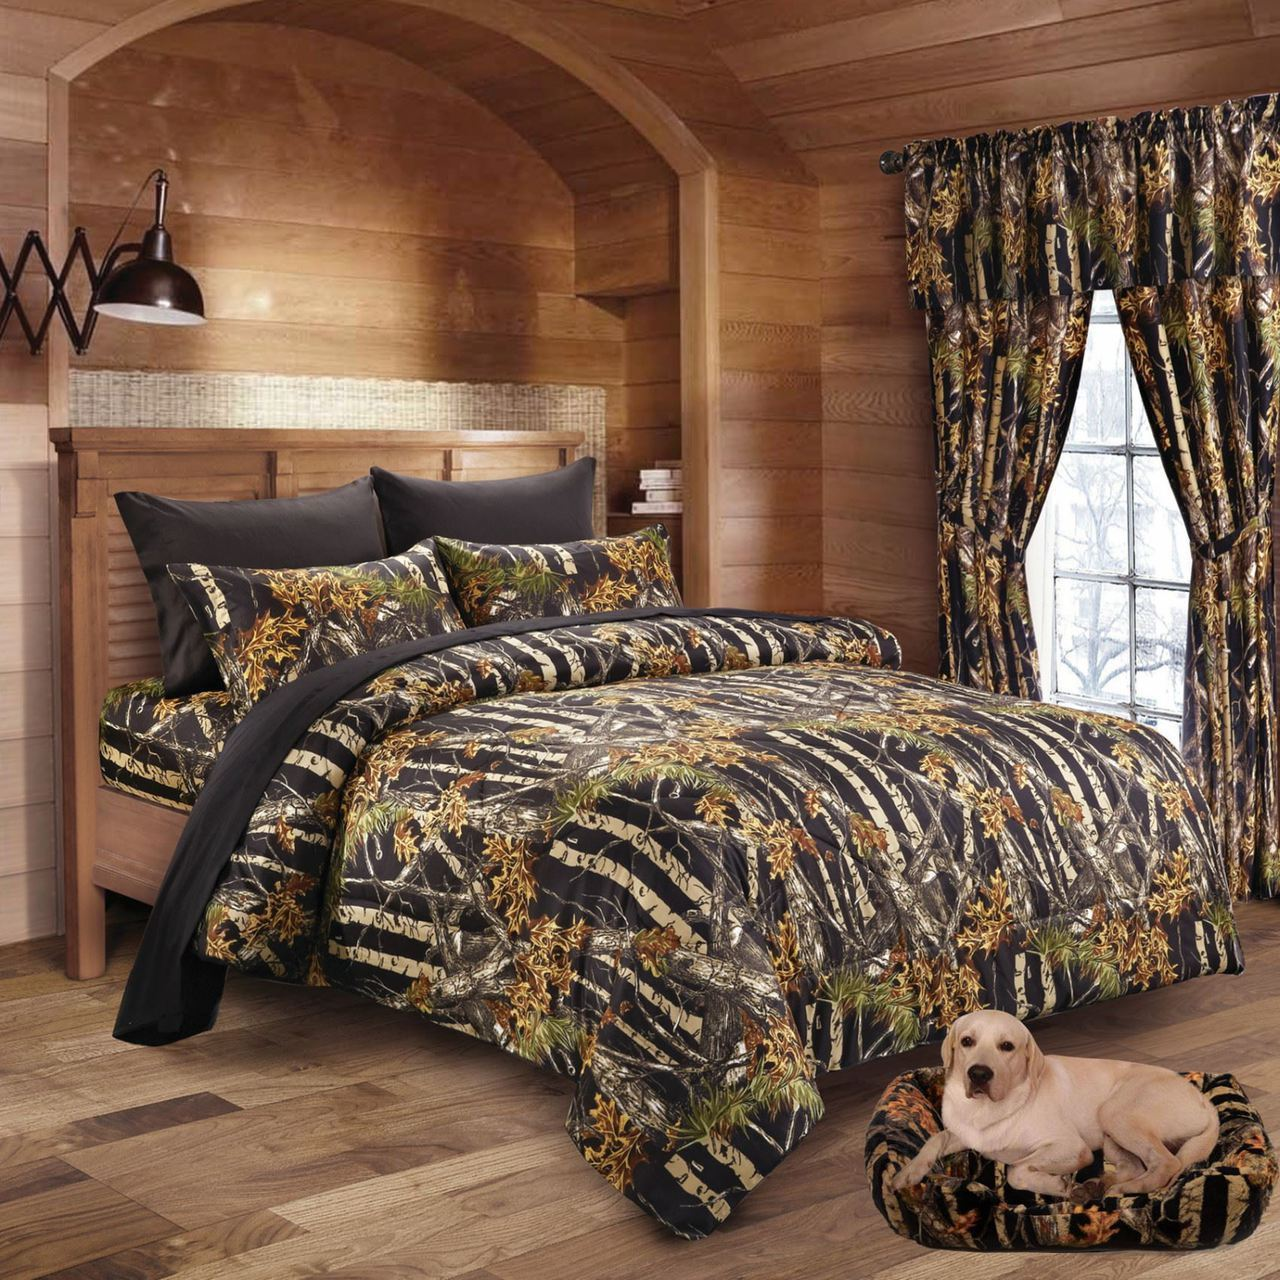 6 PC REGAL COMFORT LIME CAMO SHEETS PILLOW CASES CAMOUFLAGE QUEEN NO COMFORTER